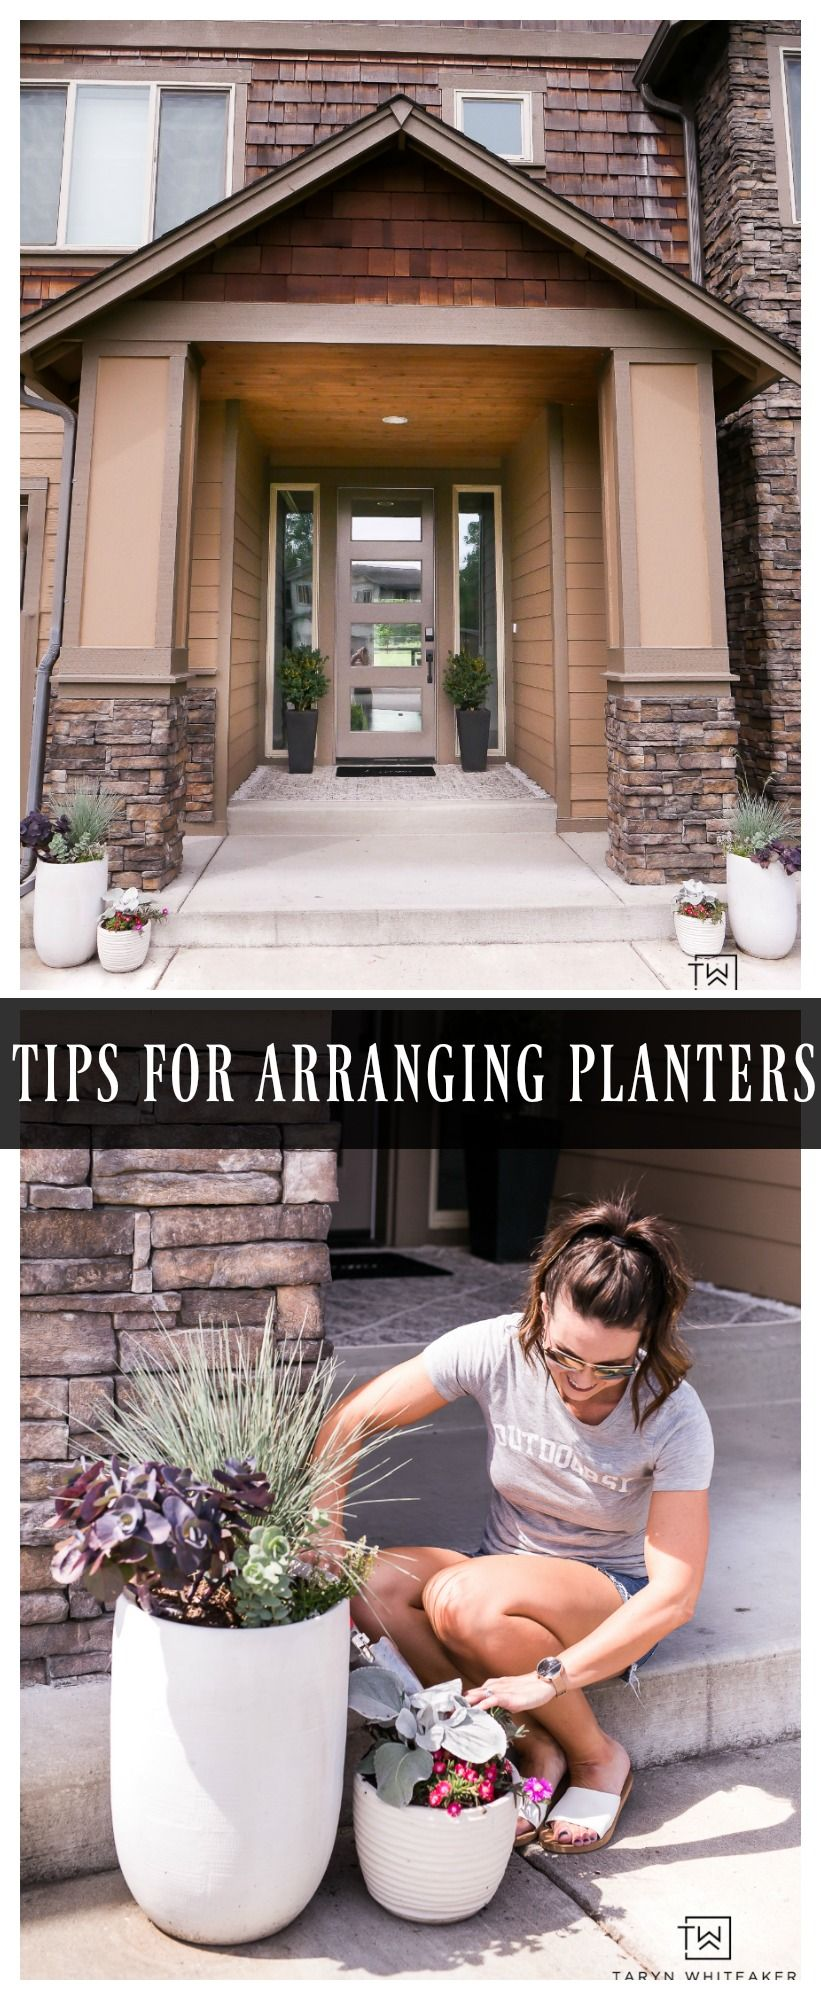 Tips For Arranging Planters is part of Front garden design, Urban garden design, Small garden design, Planters, Porch garden, Porch planters - It was finally time to update our planters for summer! I didn't have much of a plan going into this project this year, I just took a trip to the nursery and see what sparked some inspiration  Pretty much the way a lot of my projects happen  What can I say, I'm a visual person